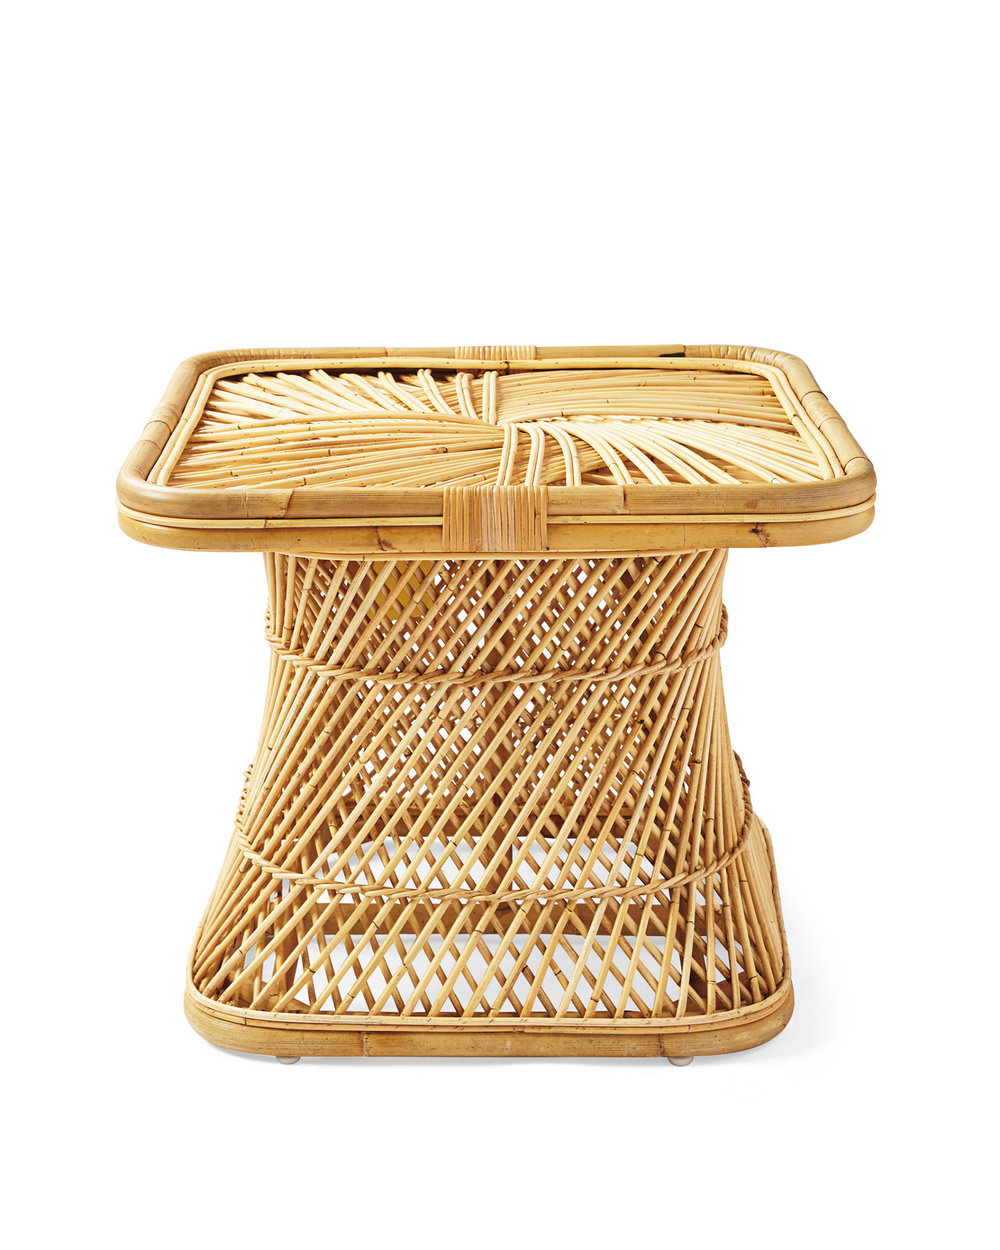 Rialto Side Table Detailshttps://www.serenaandlily.com/rialto-side-table/215650.html $298